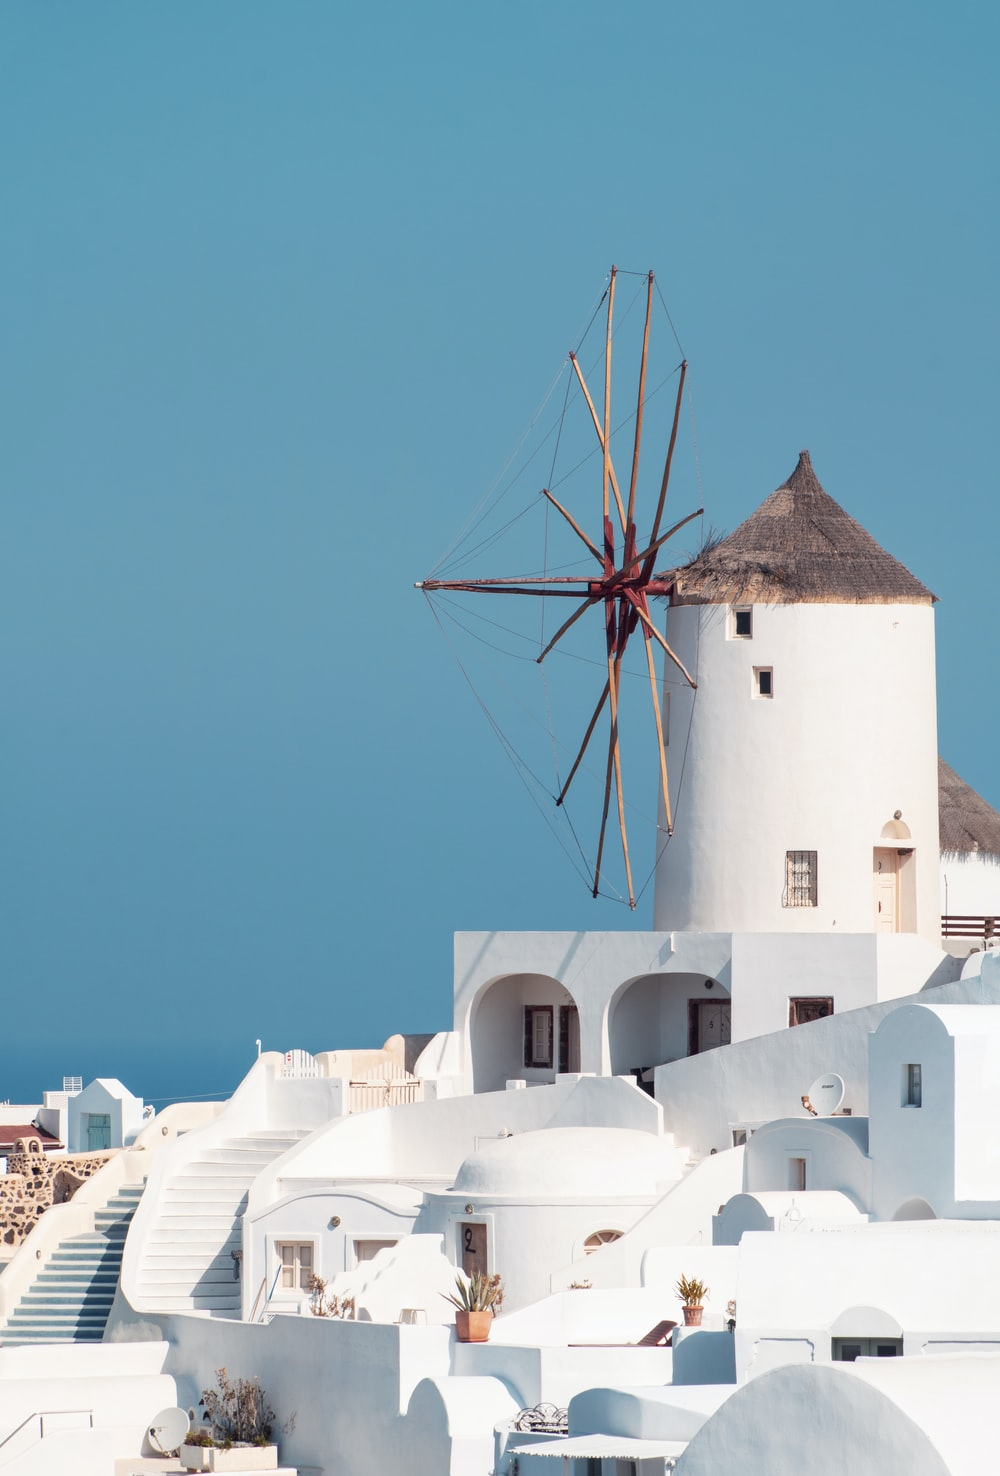 brown and white windmill